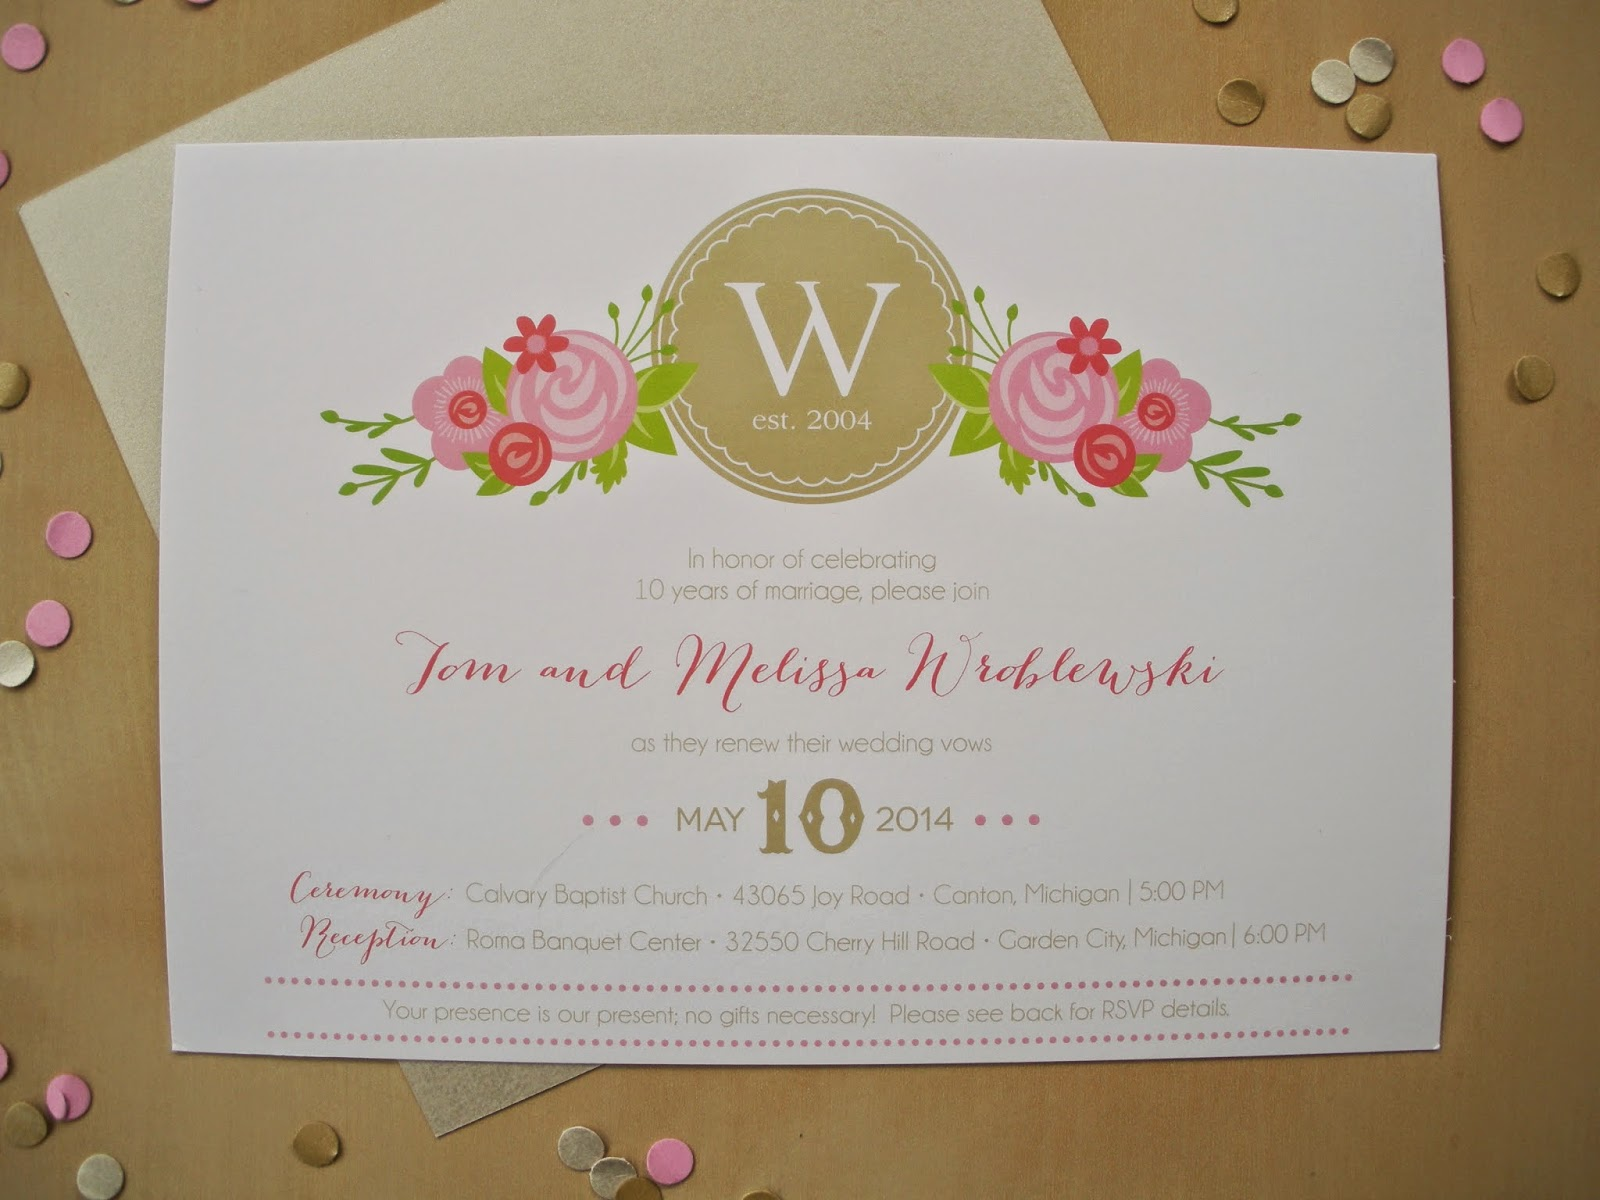 Fancy Vow Renewal Wedding Invitations Photo Invitation Card Ideas